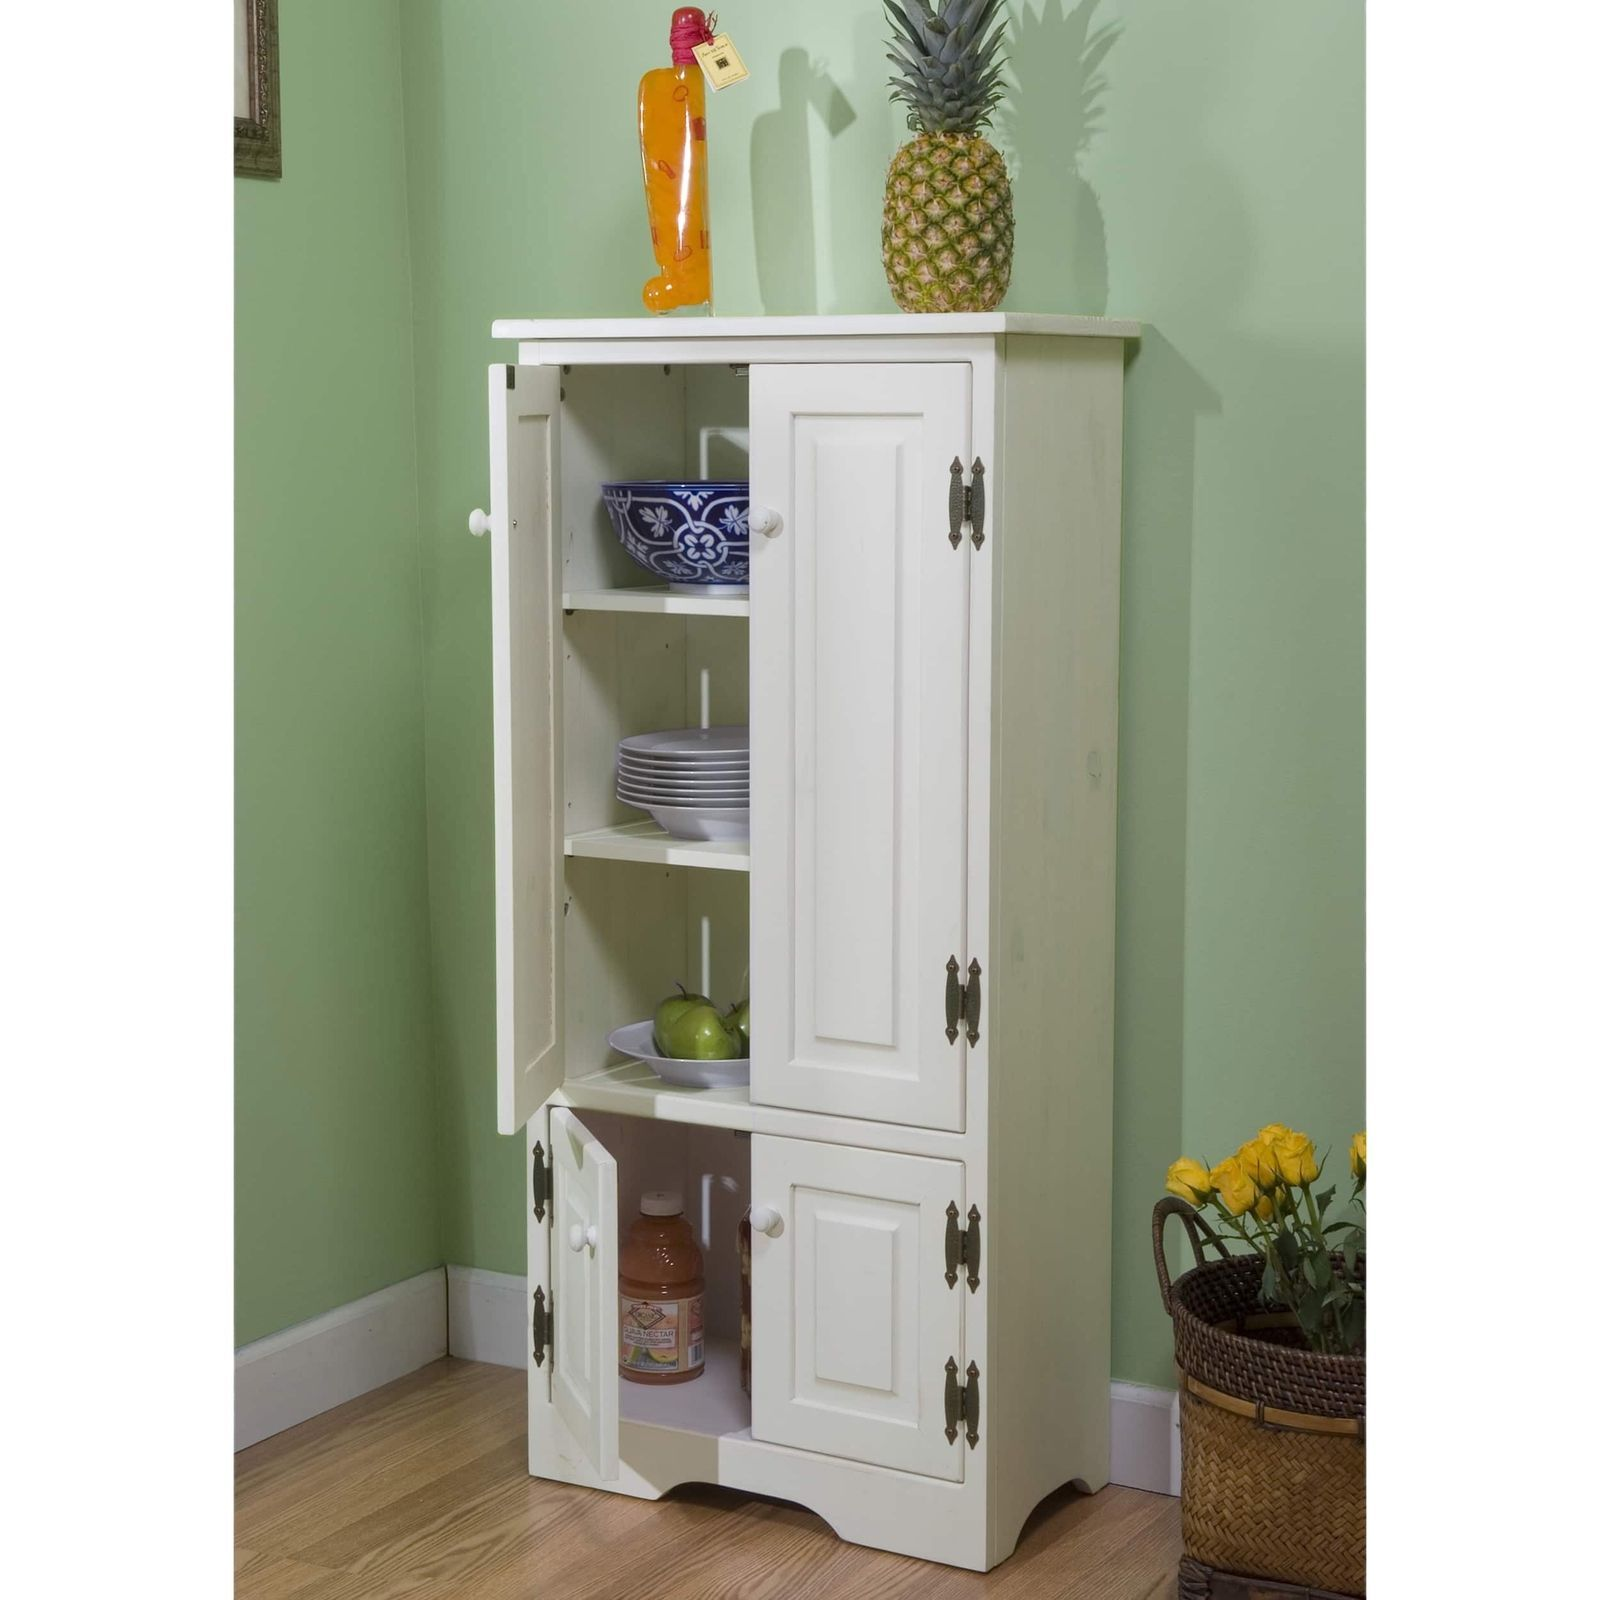 Kitchen Pantry Cabinet Installation Guide Pantry Storage Cabinet